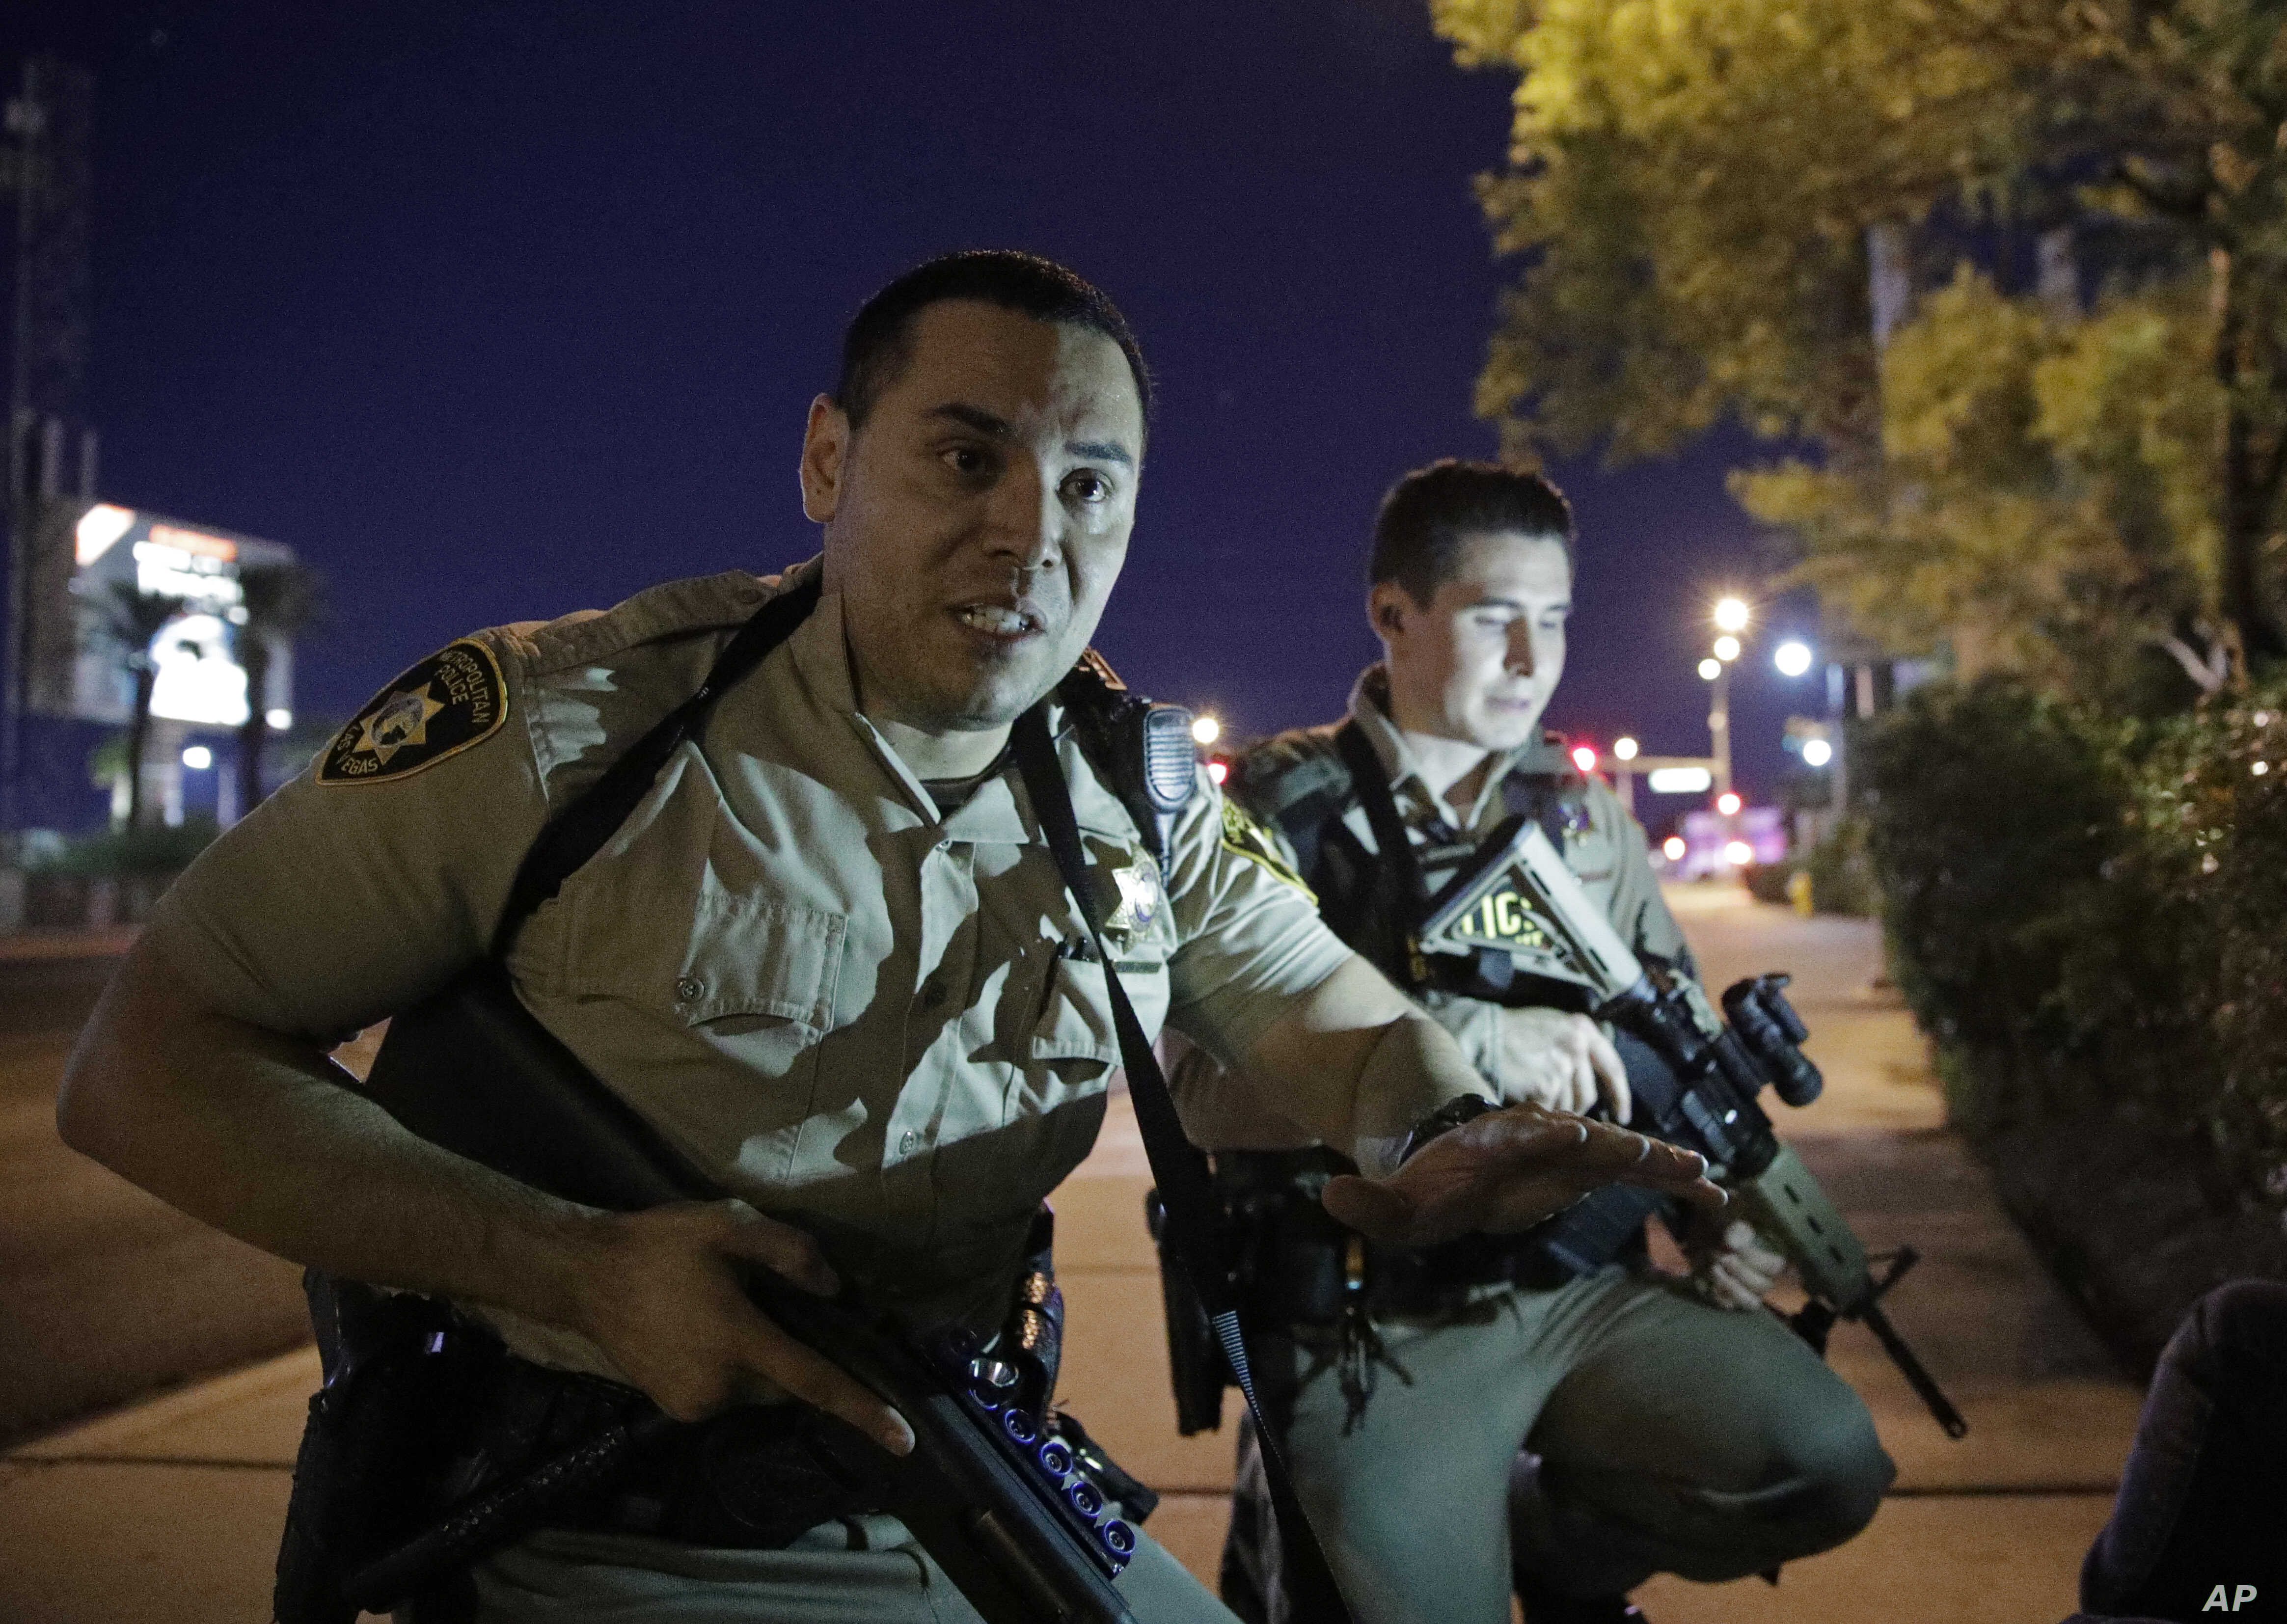 Police officers advise people to take cover near the scene of a shooting near the Mandalay Bay resort and casino on the Las Vegas Strip, Sunday, Oct. 1, 2017, in Las Vegas.